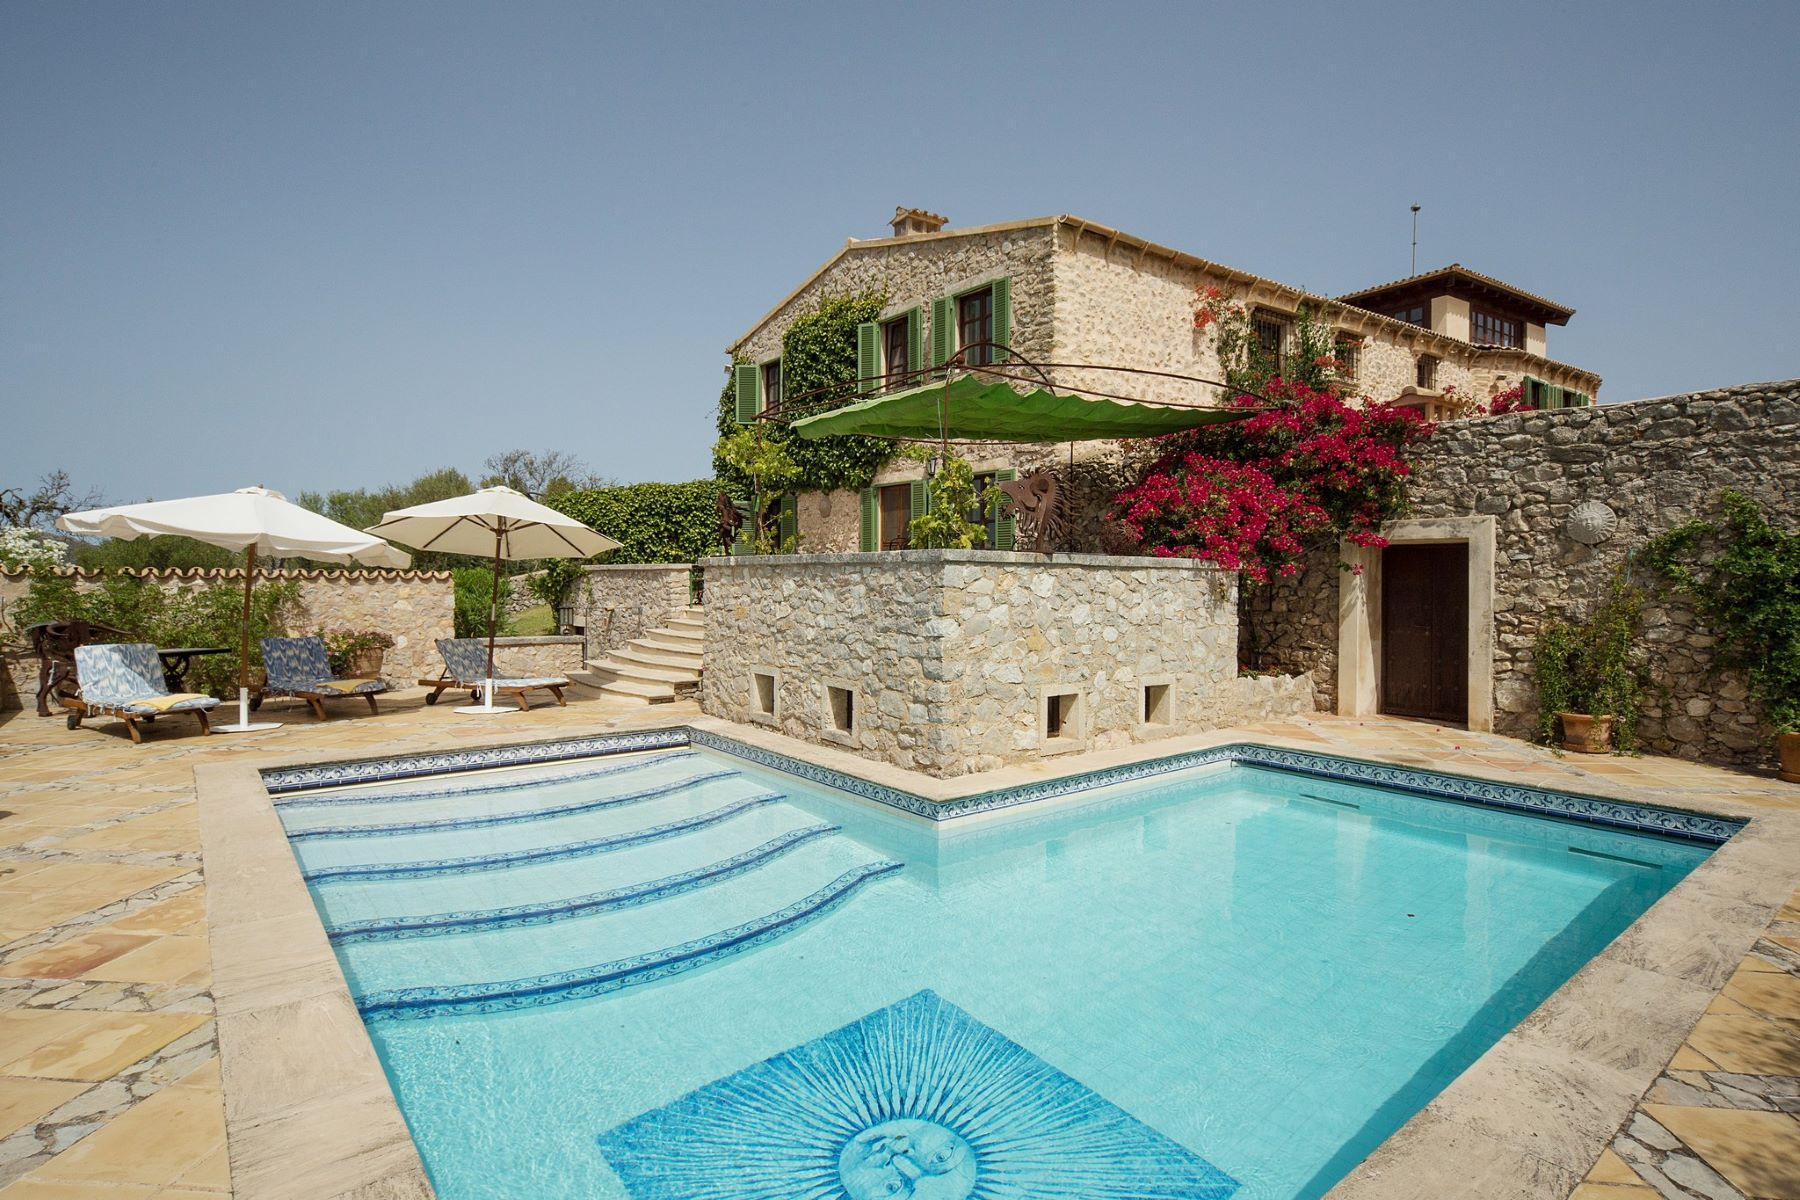 Single Family Home for Sale at Historic country estate in idyllic setting in Artà Other Balearic Islands, Balearic Islands, Spain